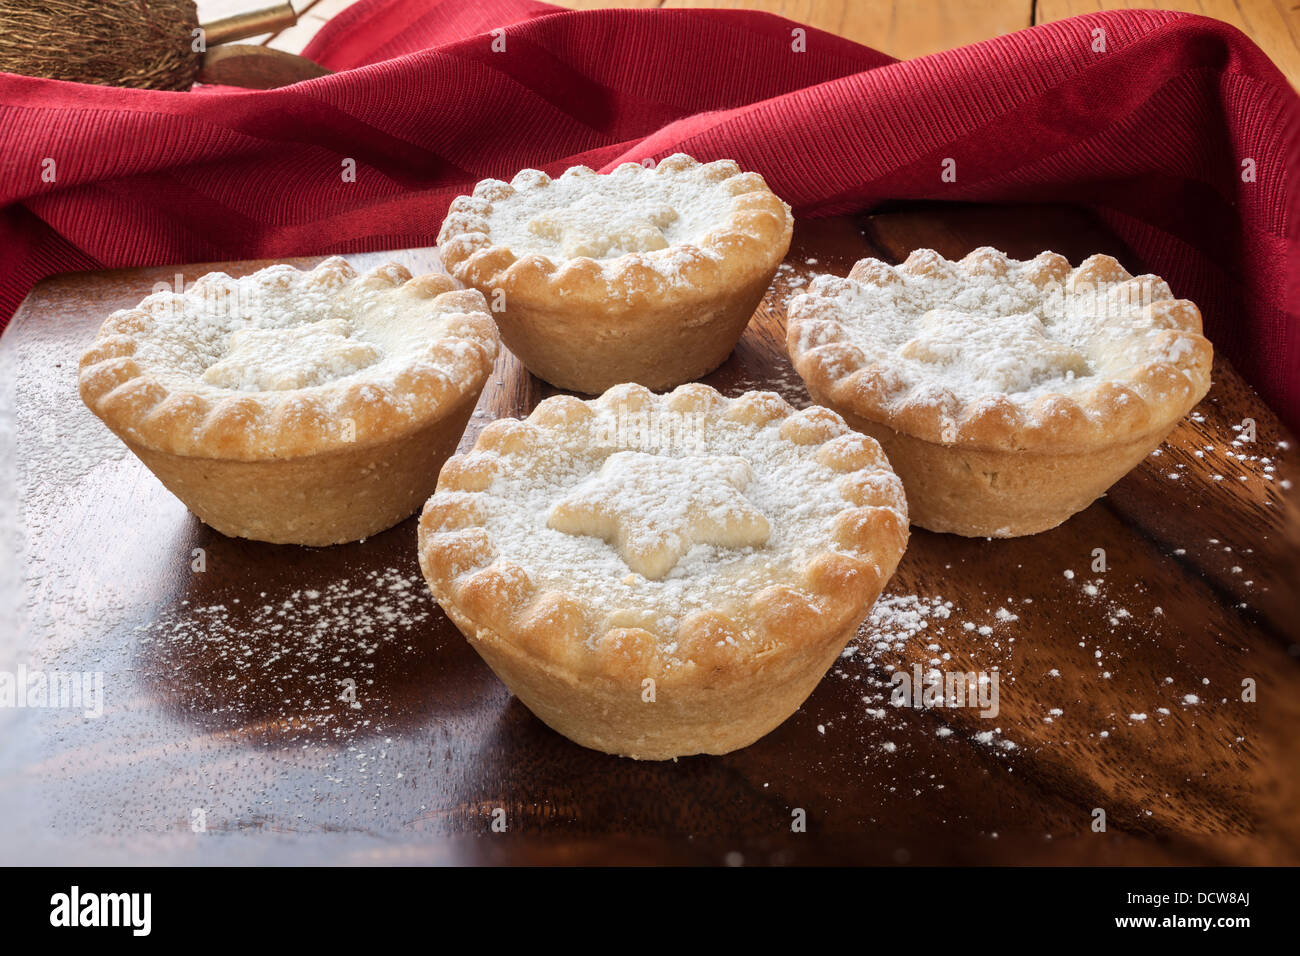 Christmas mince pies with sifted icing sugar - Stock Image